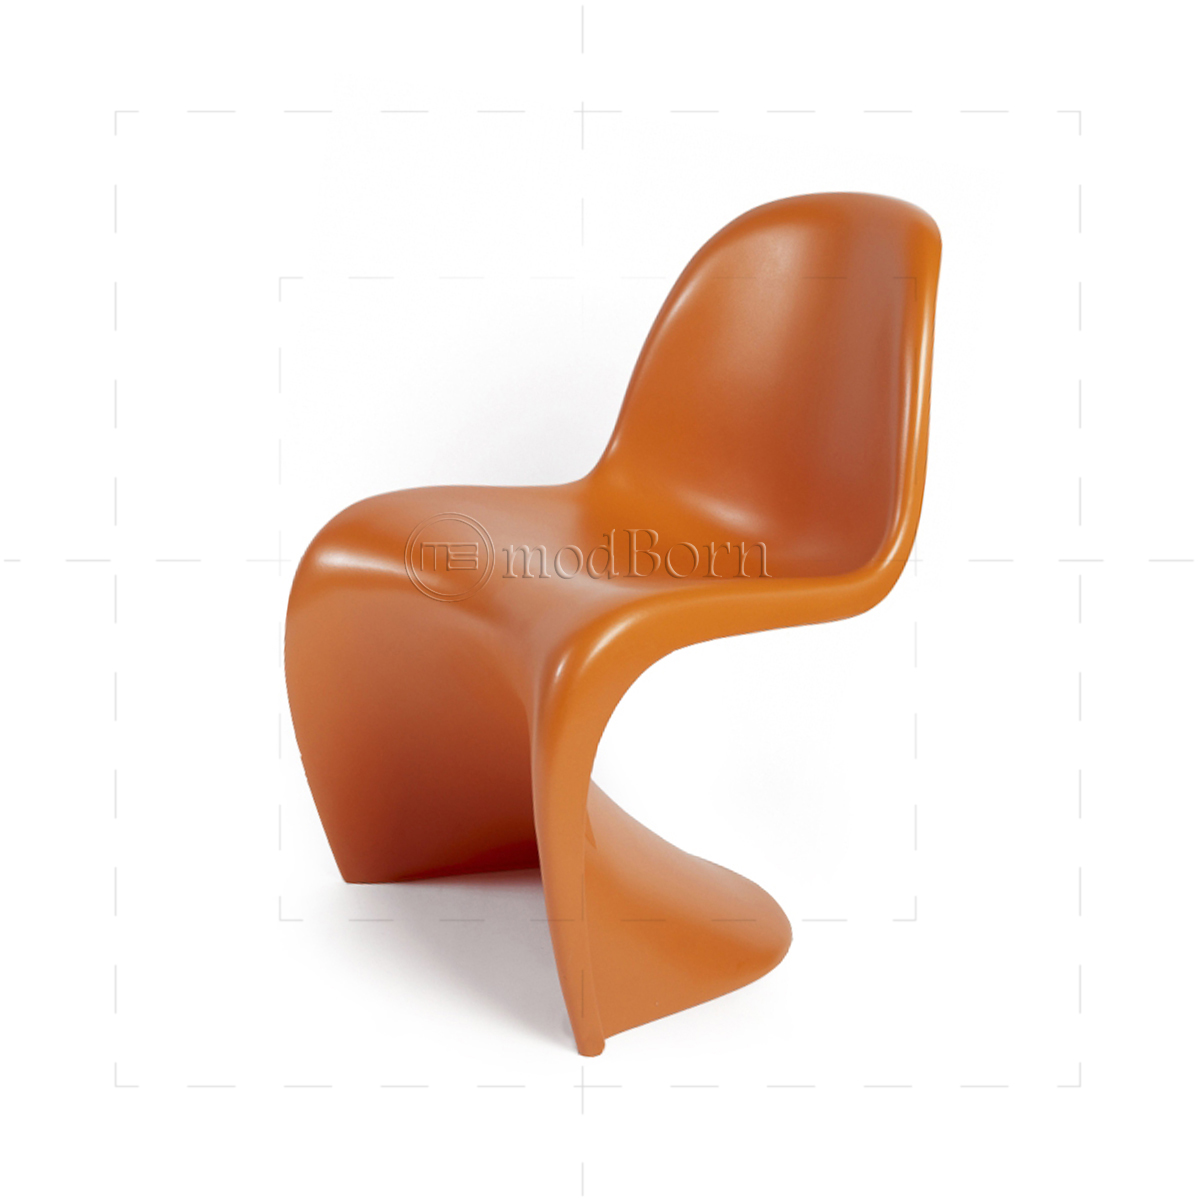 verner panton chair orange. Black Bedroom Furniture Sets. Home Design Ideas